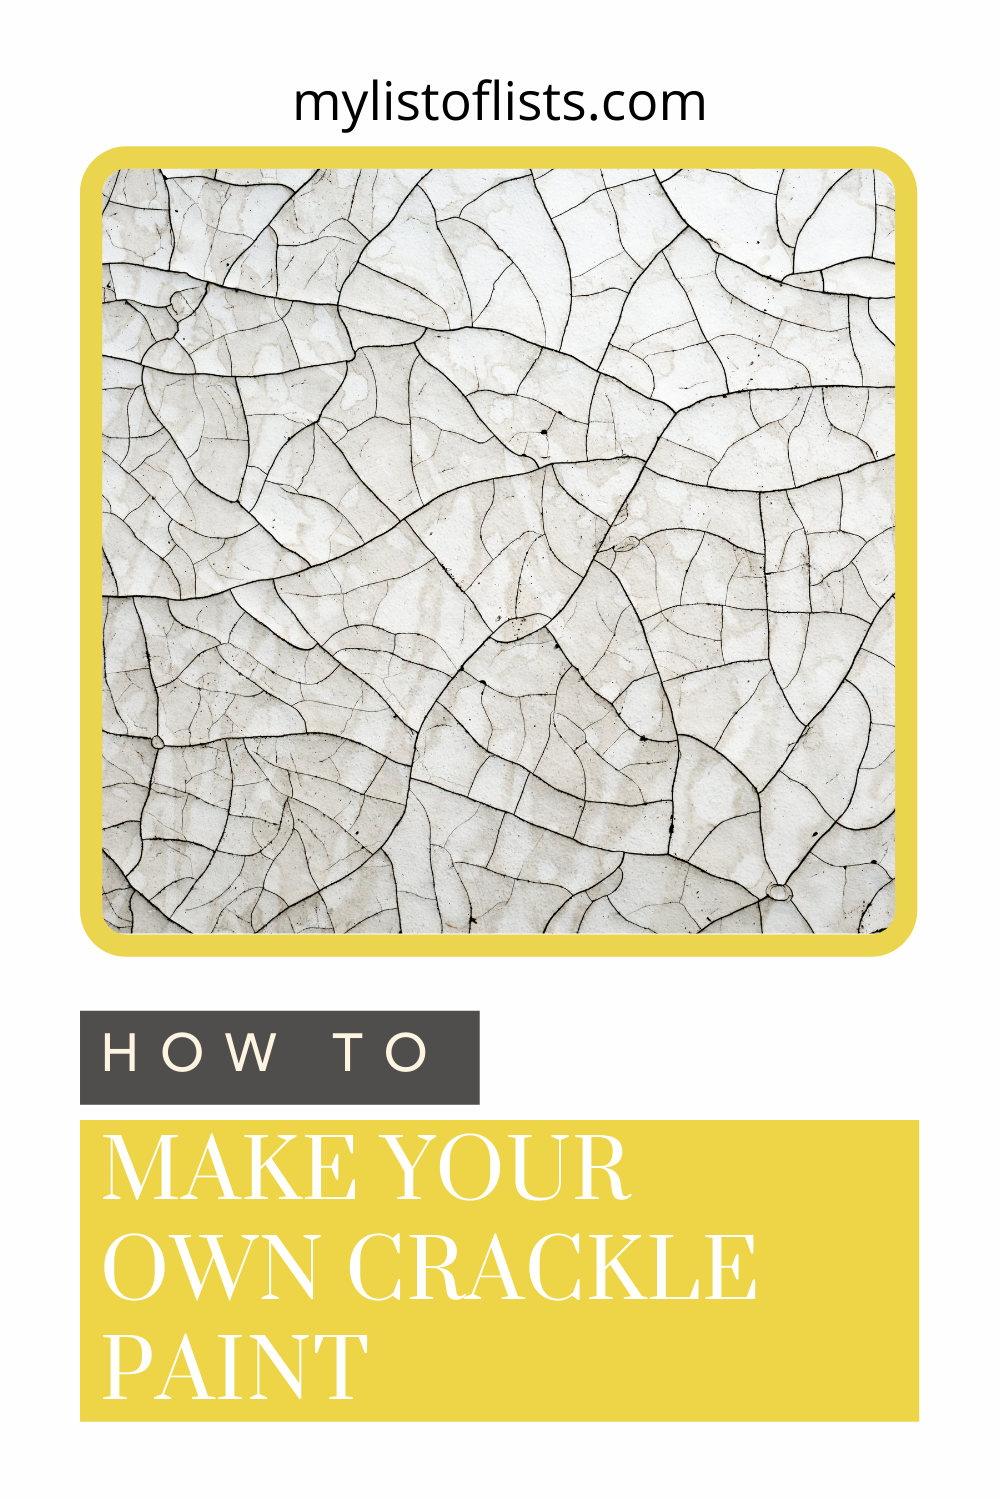 Mylistoflists.com has all you need to know about a whole range of topics! If you've been getting crafty, learn how to make new mediums! Find out how to make crackle paint using glue!